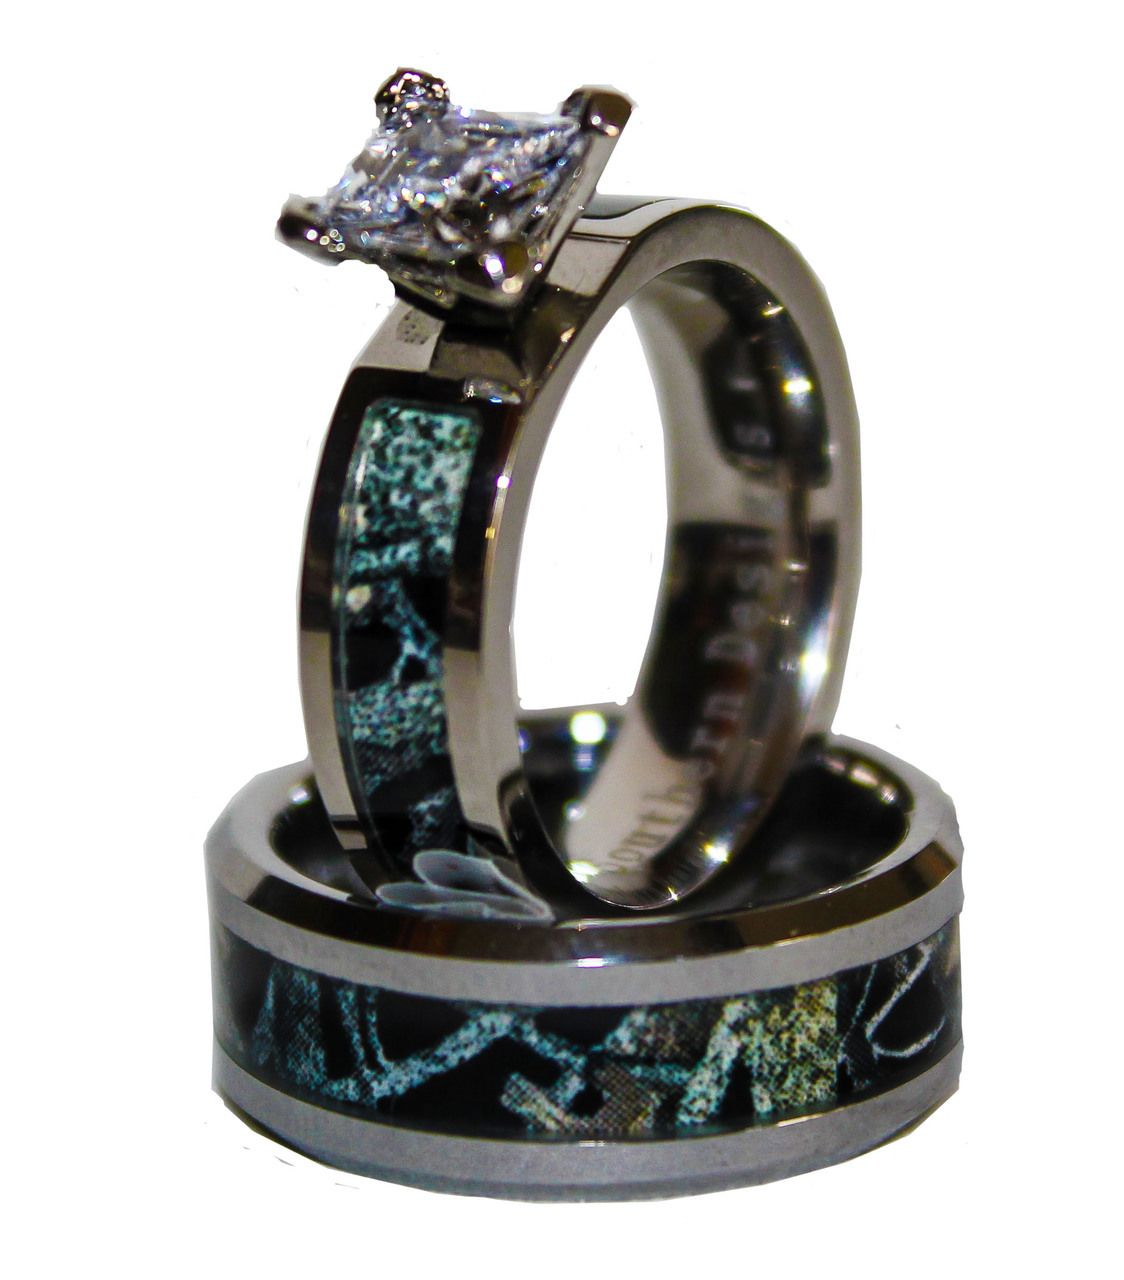 Black Camo On Silver Band Couples Ring Set With Stone Camo